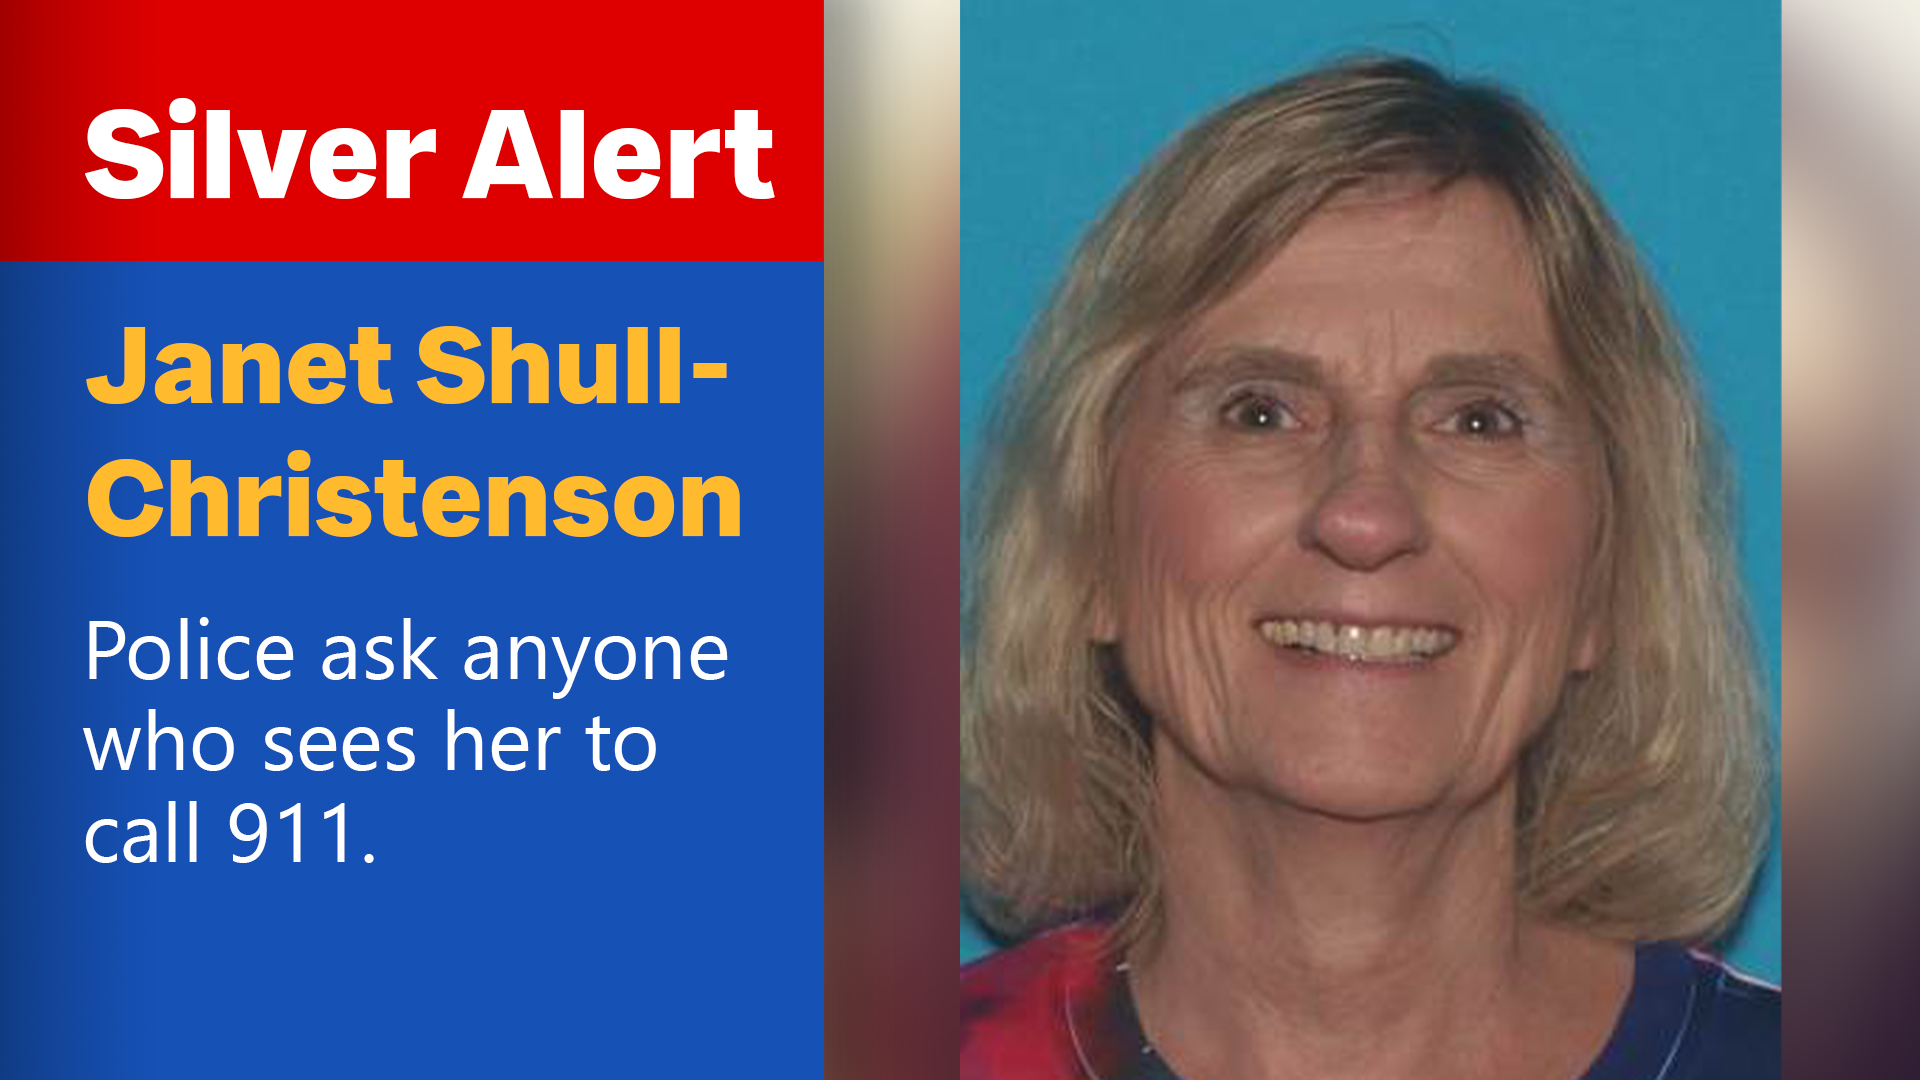 Silver Alert for Janet Shull-Christenson